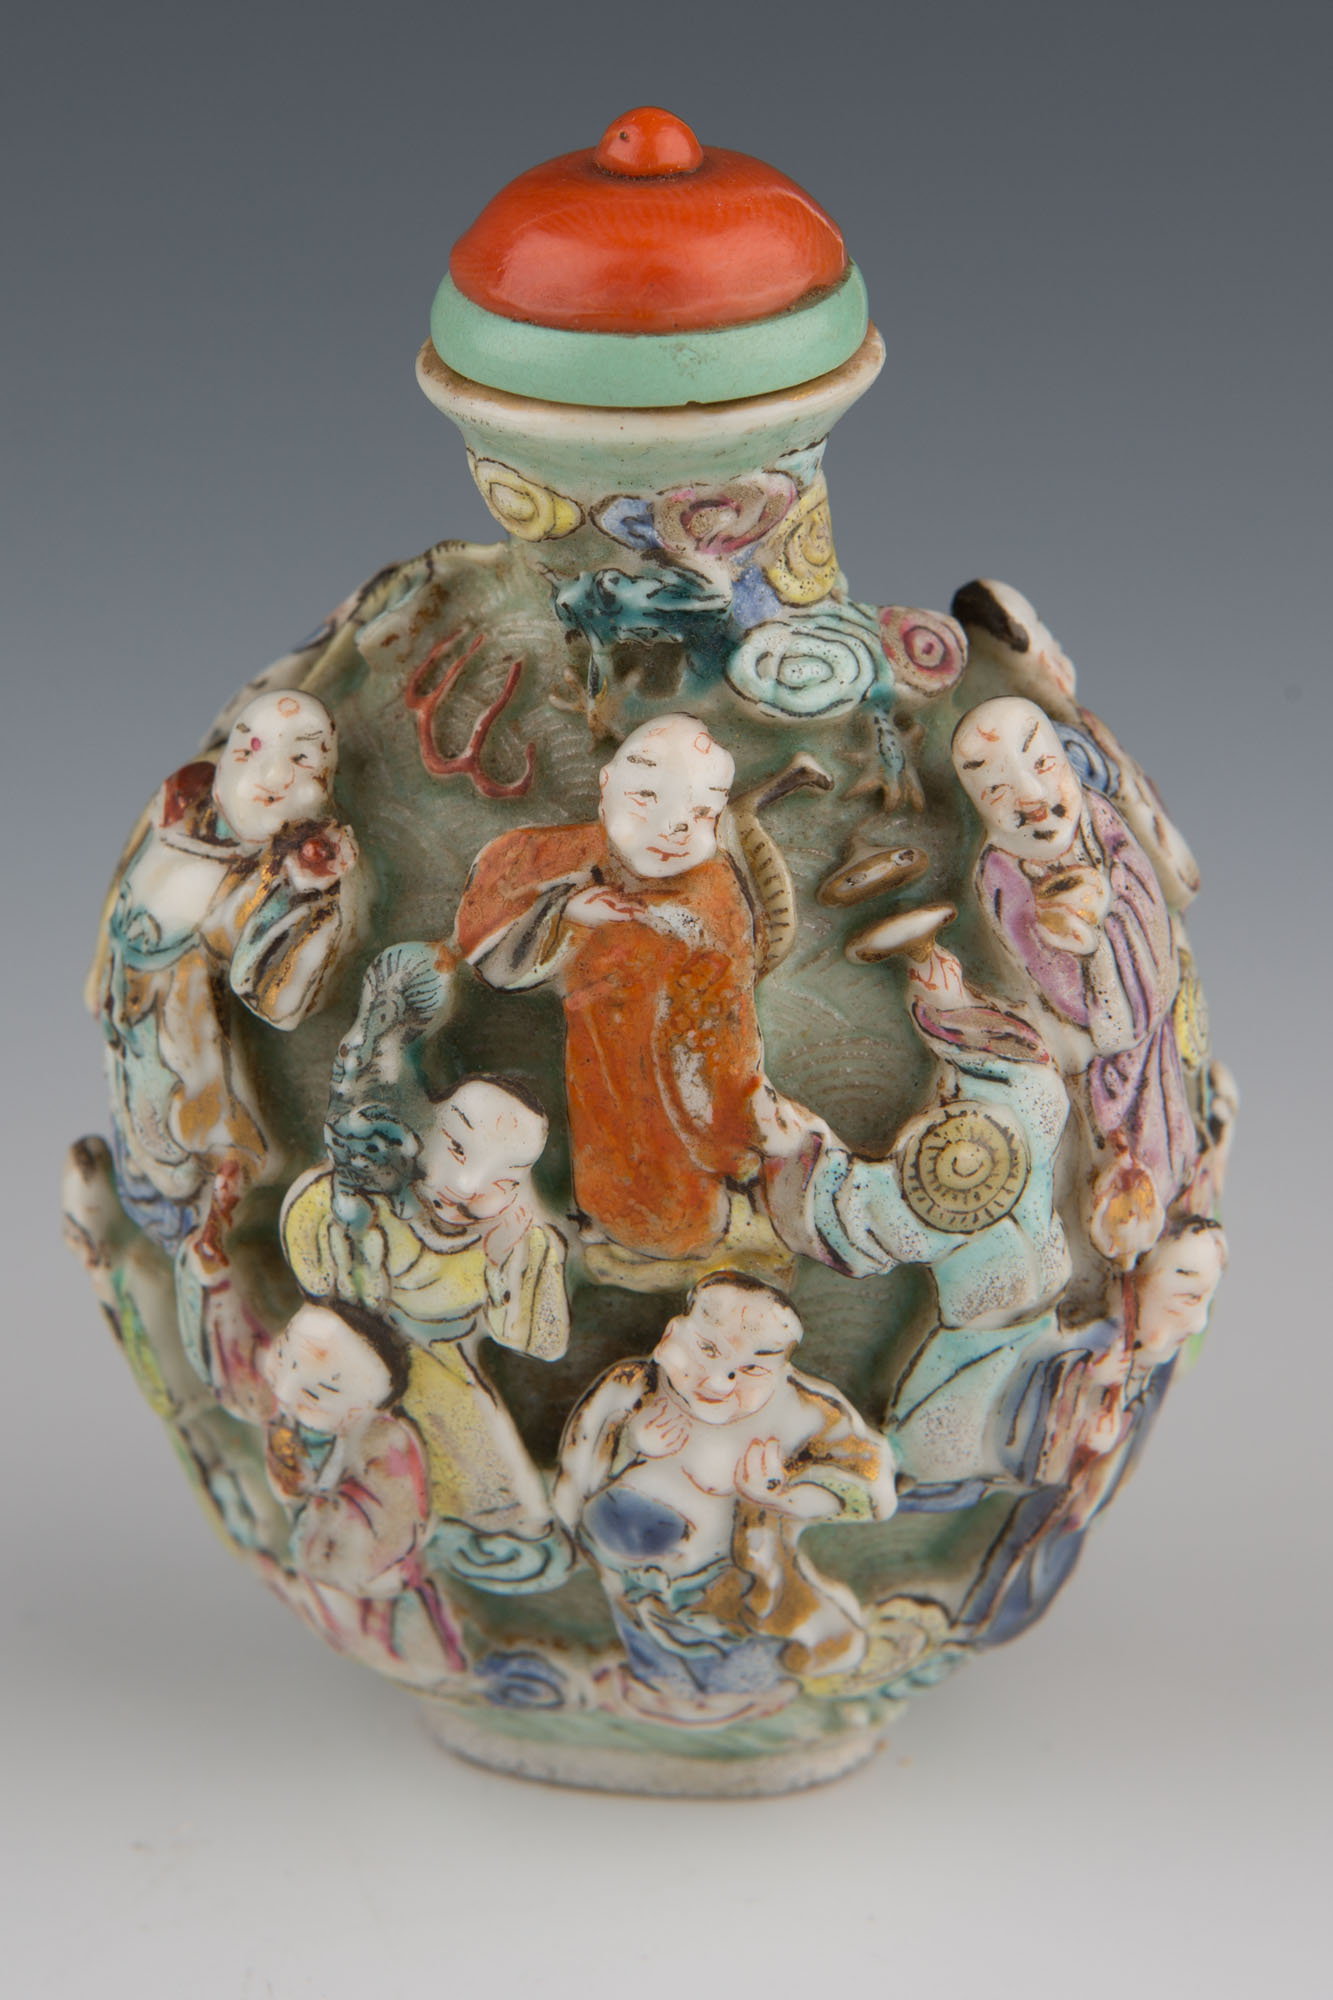 A moulded and enamelled porcelain snuff bottle, 1800-1850.